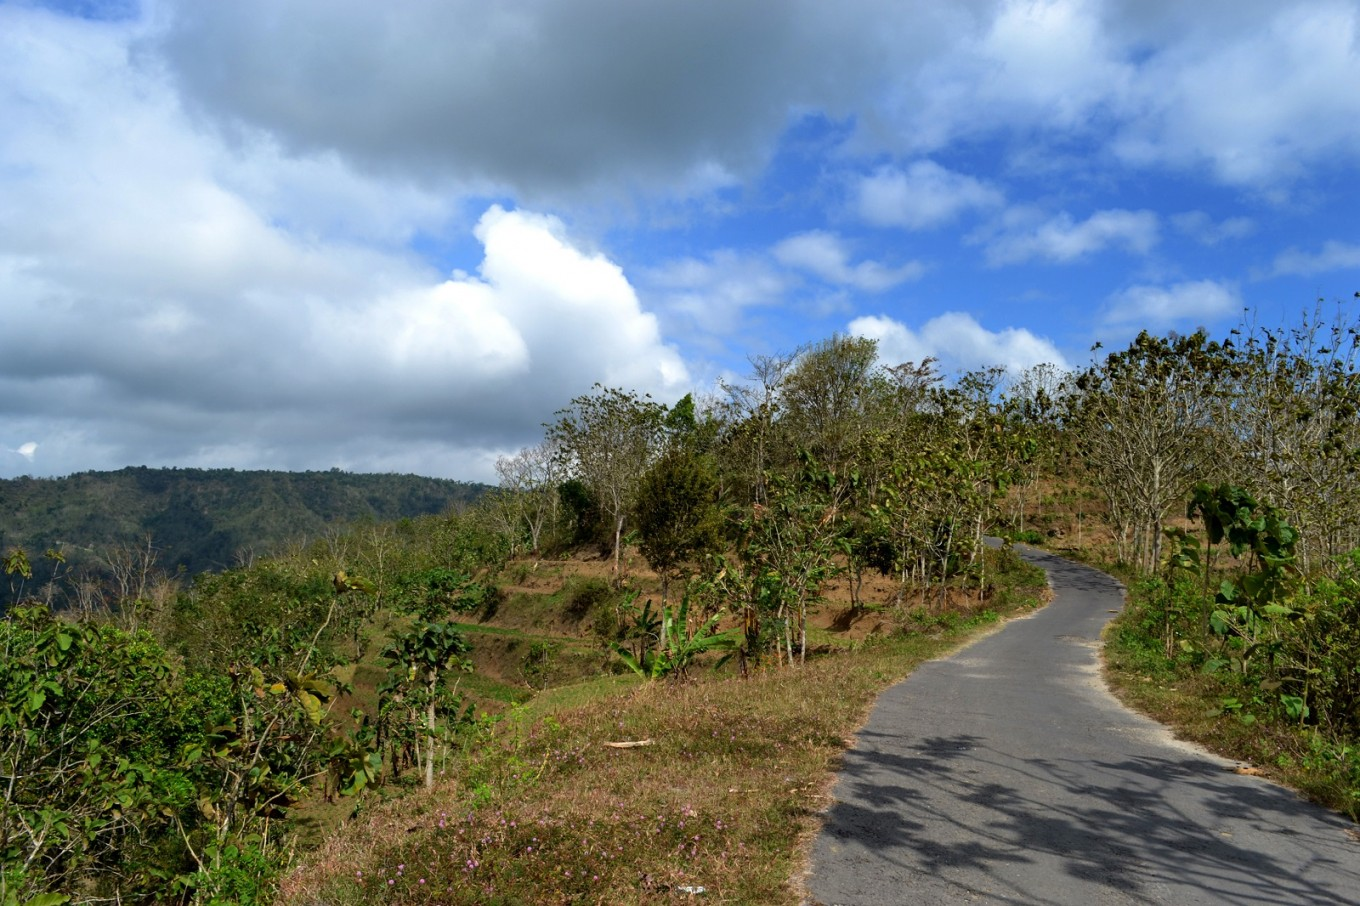 A curvy road near Mount Sewu, lined with teak forest and karst.